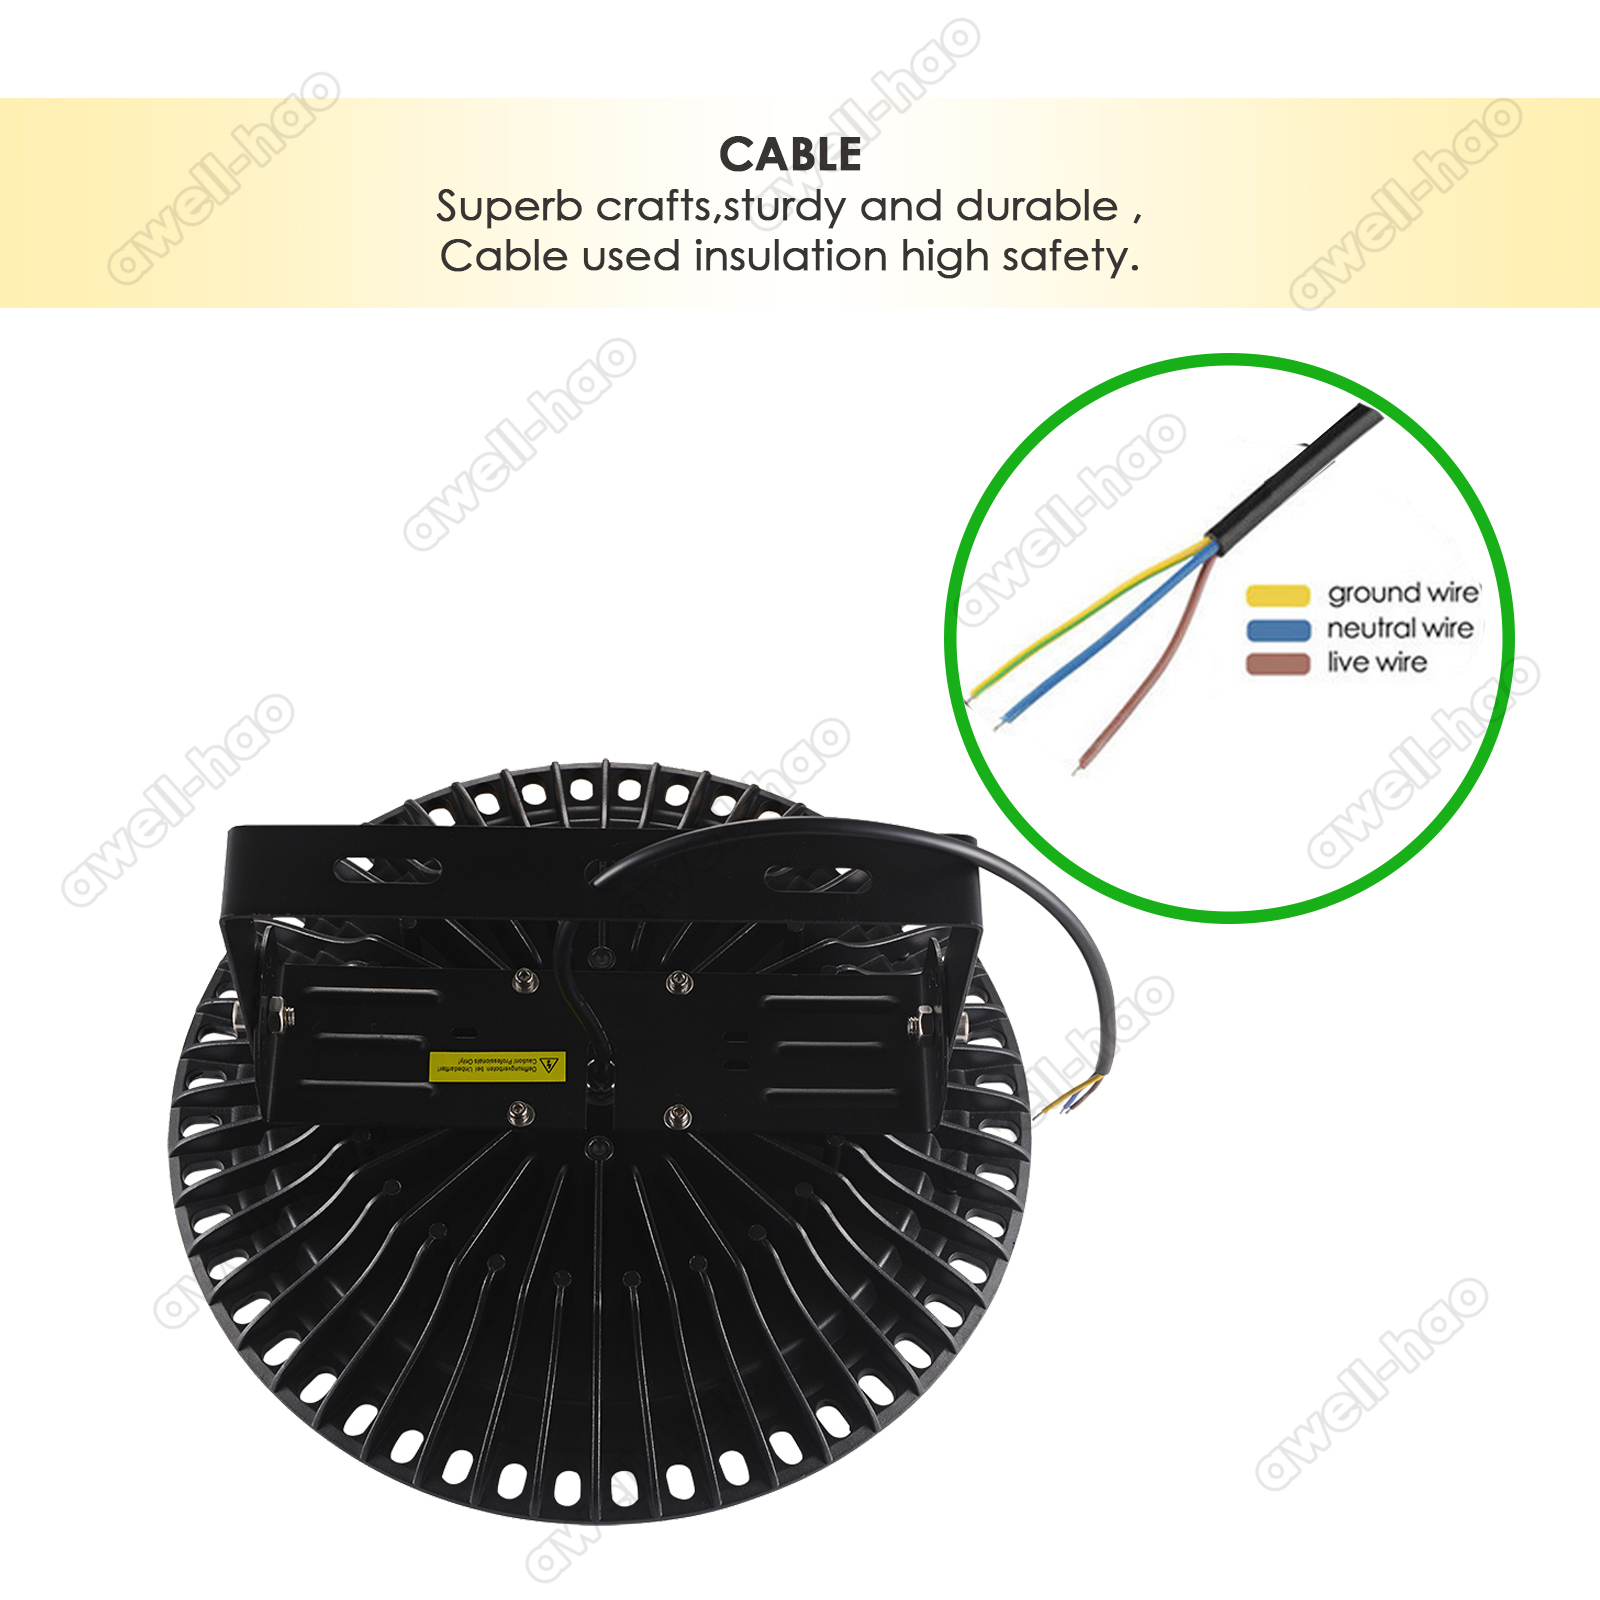 100w 200w 300w Ultra Thin Led High Bay Lights Warehouse Industrial Wiring In A Shed Factory